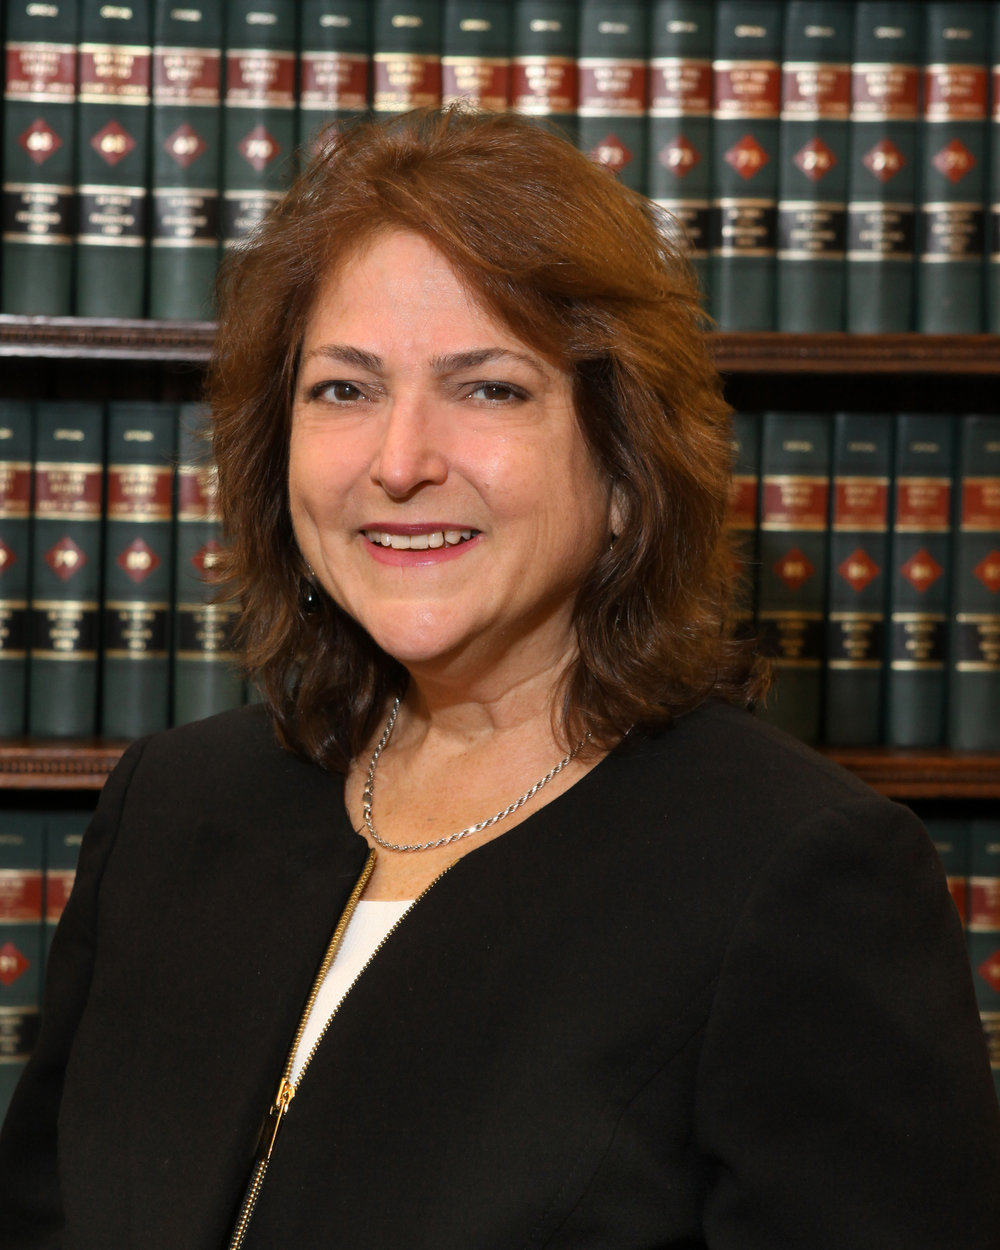 Justice Judith J. Gische  currently serves as an Associate Justice in the New York State Appellate Division, First Judicial Department. She was appointed in October 2012.  Justice Gische began her judicial career in 1990, when she was appointed to serve as a Housing Court Judge in Kings County. She was then elected to the Civil Court in the City of New York in 1994 and reelected in 2004. She was appointed an acting Supreme Court Justice in 1997. She was elected to the Supreme Court for a term beginning 2009. Among other assignments, Justice Gische presided over dedicated matrimonial parts in both the Bronx and New York County for seven years and subsequently presided over an IAS Civil Part in New York County for eight years.  Prior to her election to the bench, Justice Gische was a Judicial Clerk in the Appellate Division, Third Department from 1980 to 1982 and a senior attorney at Richenthal, Abrams & Moss from 1982 to 1990. From 1990 to 1993, she served as a Judge in the Housing Part of the Civil Court of the City of New York in Brooklyn.  In 1977 Justice Gische received her undergraduate degree with honors from the State University of New York at Buffalo. She went on to receive her law degree from SUNY Buffalo in 1980.  She is a member of various bar associations, including:   the New York State Bar Association,     the City Bar Association , where she currently serves on the Committee on State Courts of Superior Jurisdiction; she has previously served on the Tort Litigation Committee, the Matrimonial Committee; as Chair of the Housing Court Public Services Project, on the Council on Public Service, the Housing Court Committee, and on various Advisory Committees;   the New York County Lawyers Association,  where she currently serves as a chair of the Judicial Section and as a delegate to the House of Delegates;   the Women's Bar Association of New York , where she currently serves as a member of the Board of Directors and   the New York Association of Women Judges.   Justice Gische is a member of Chief Judge Janet DiFiore's newly formed Advisory Committee on Evidence. She is a member of the Committee on Pattern Jury Instructions Association of the State of New York. She also serves on the Dean's Advisory Committee of her alma mater, UB Law School. She was Adjunct Professor for ten years at New York Law School and has been a featured lecturer on numerous occasions for varied professional associations. She has published a number of articles on housing, custody and  guardianship issues. She is also a co-author of chapter 6 of the Judges Bench Book.